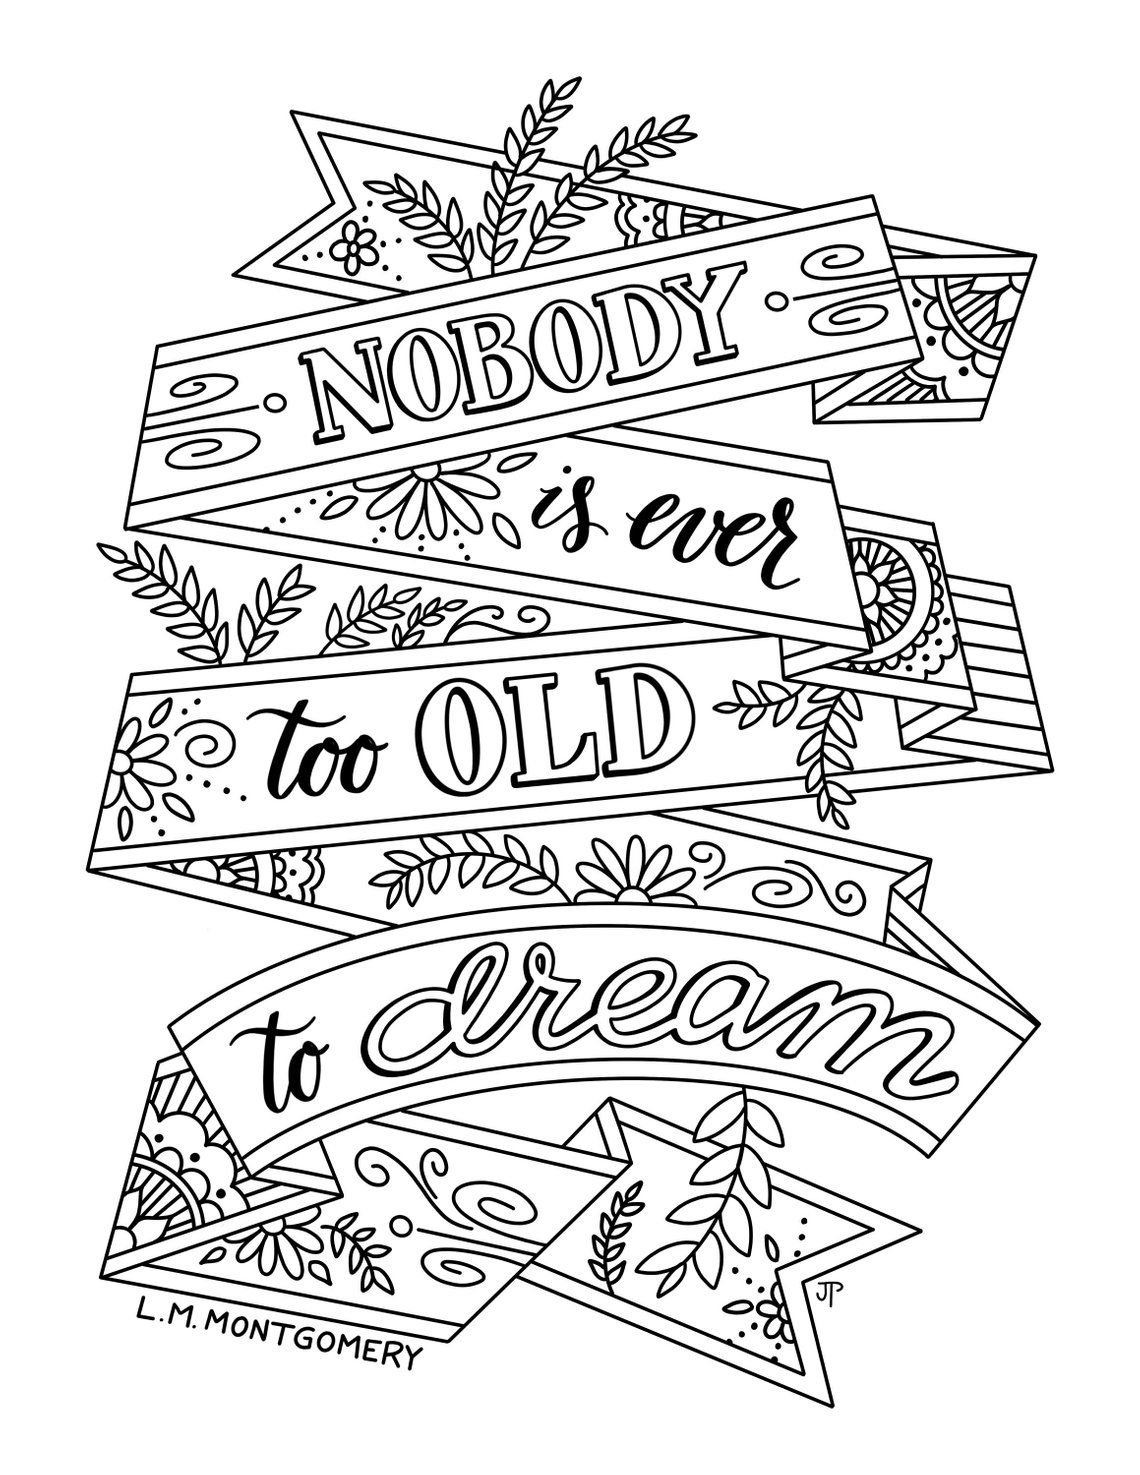 Nobody Is Ever Too Old To Dream Coloring Page Lm Montgomery Etsy In 2021 Coloring Pages Inspirational Quote Coloring Pages Love Coloring Pages